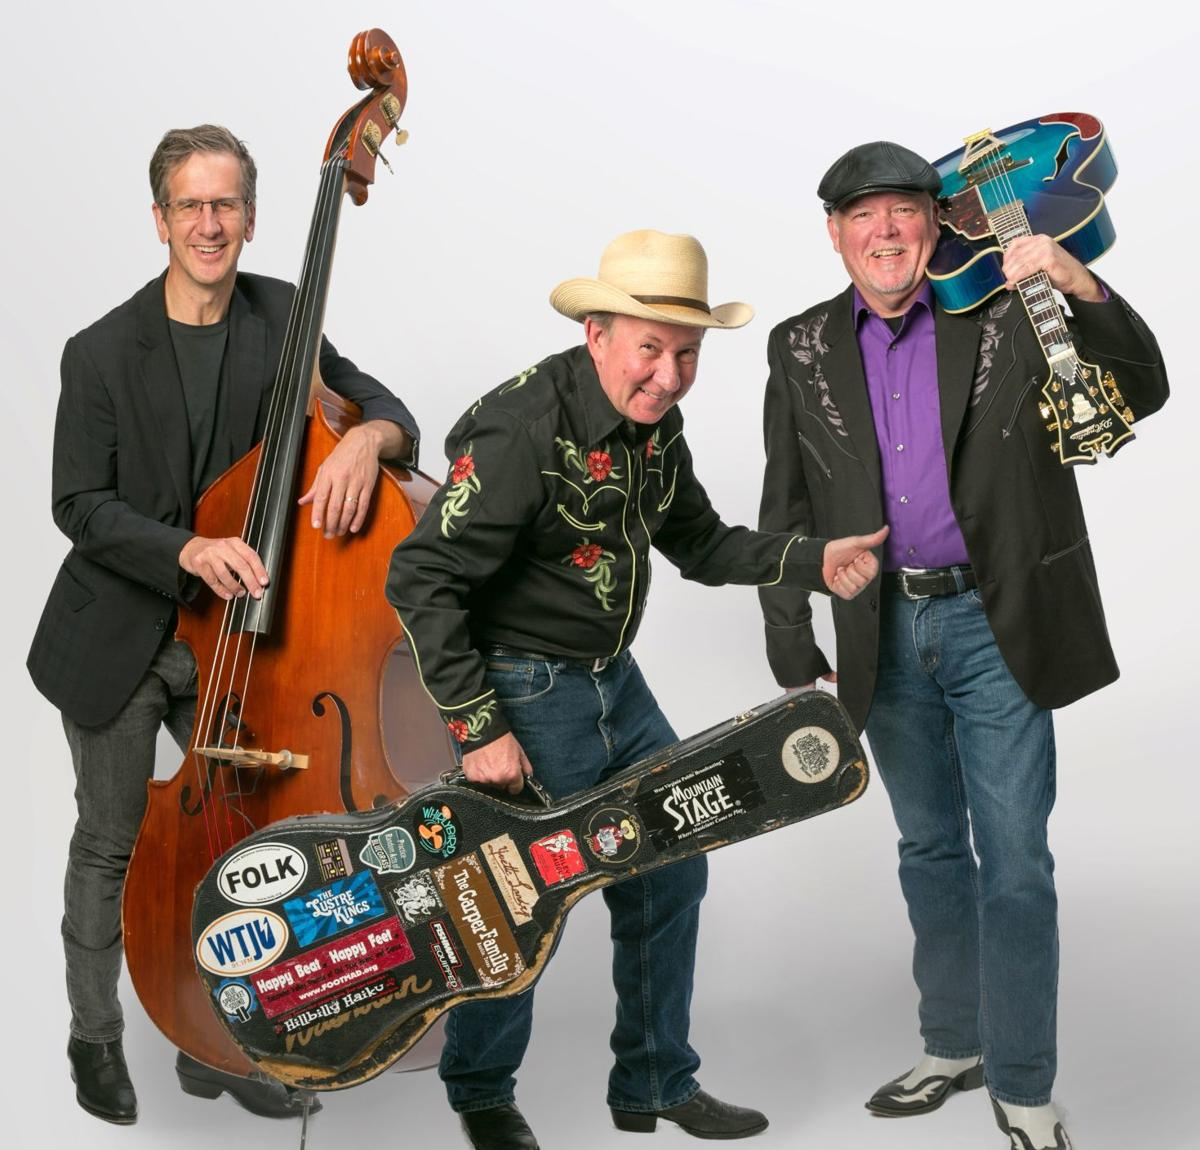 Blue Yonder takes the stage of the Harvest House in Boone on Sunday, Sept. 1, to kick off Joe Shannon's Mountain Home Music 2019 Indoor Concert Series.